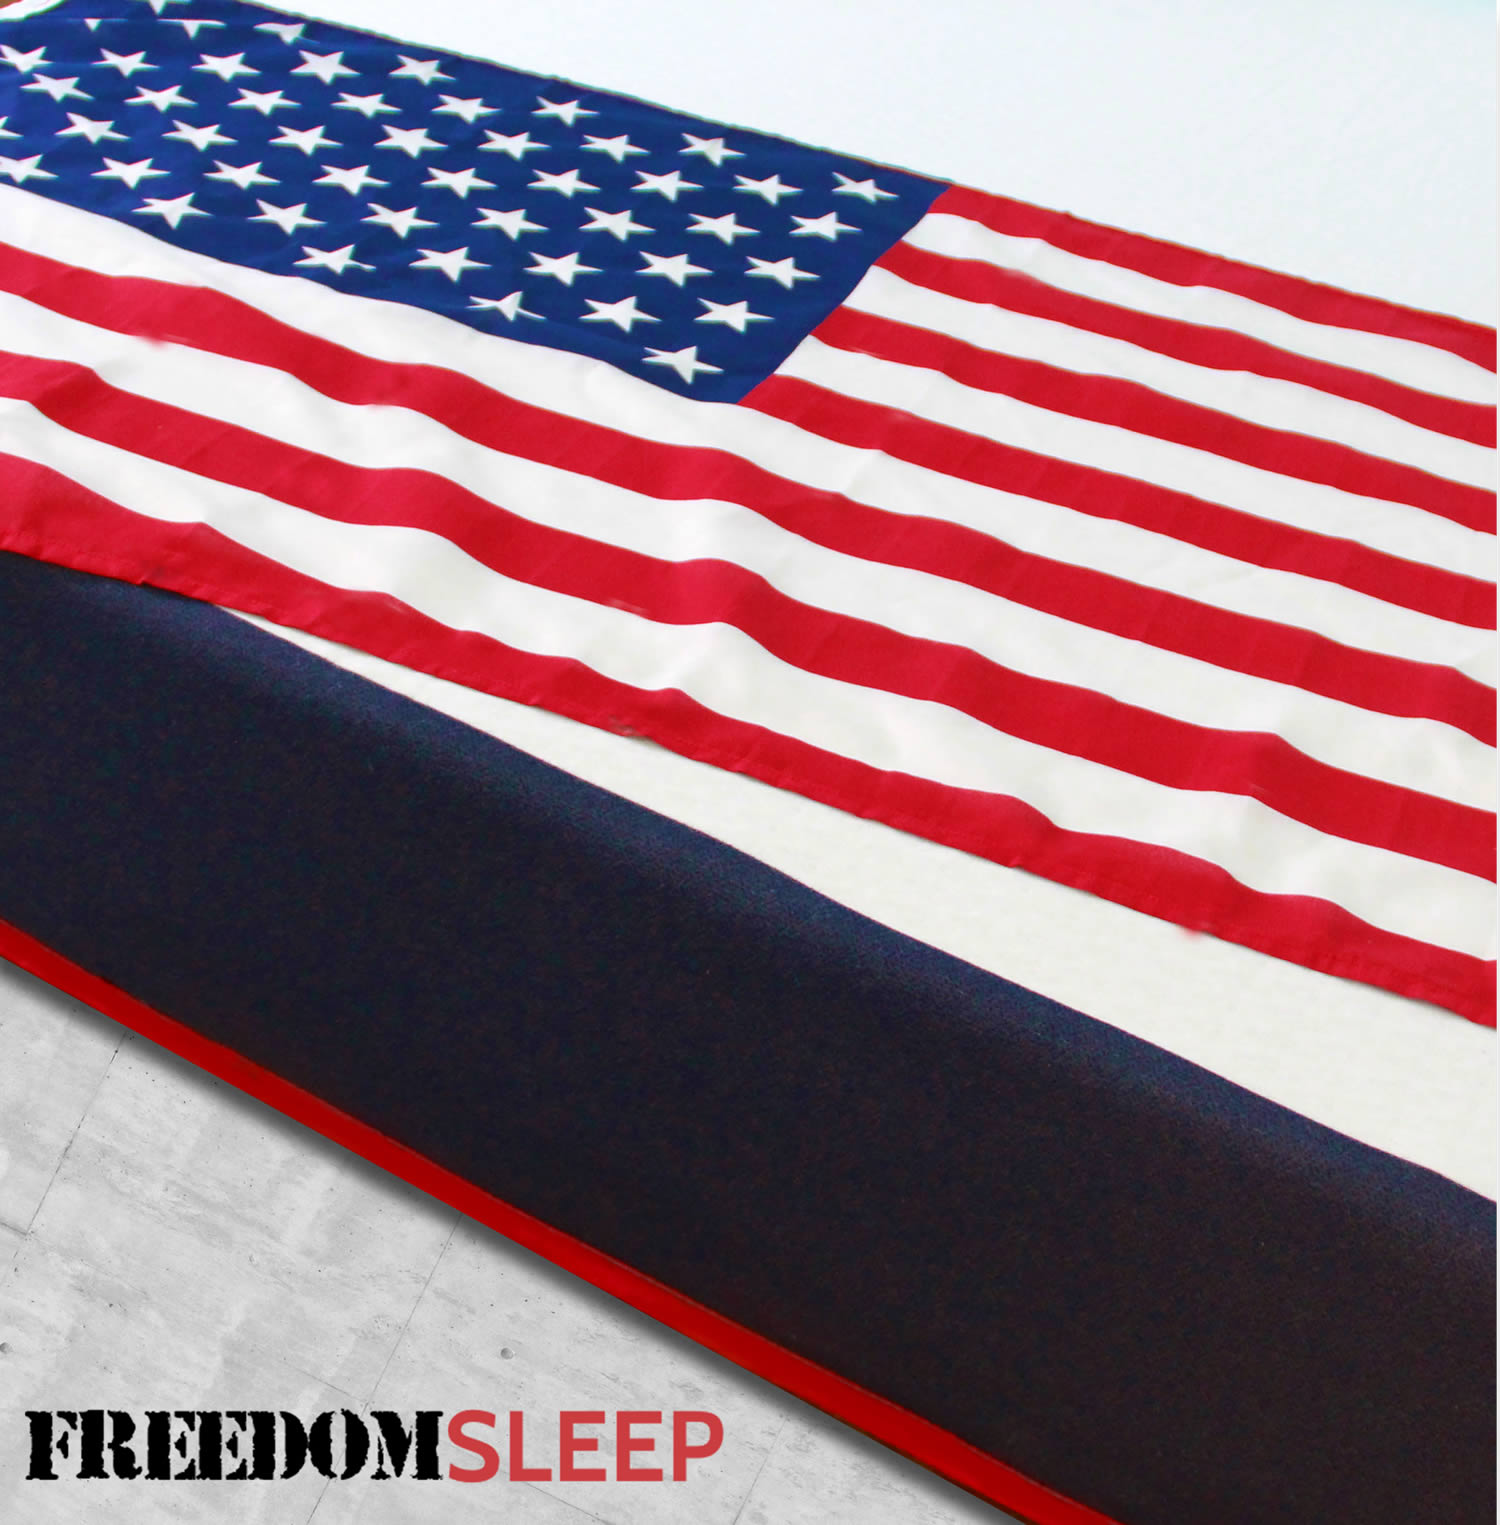 Freedom Sleep Mattress Review